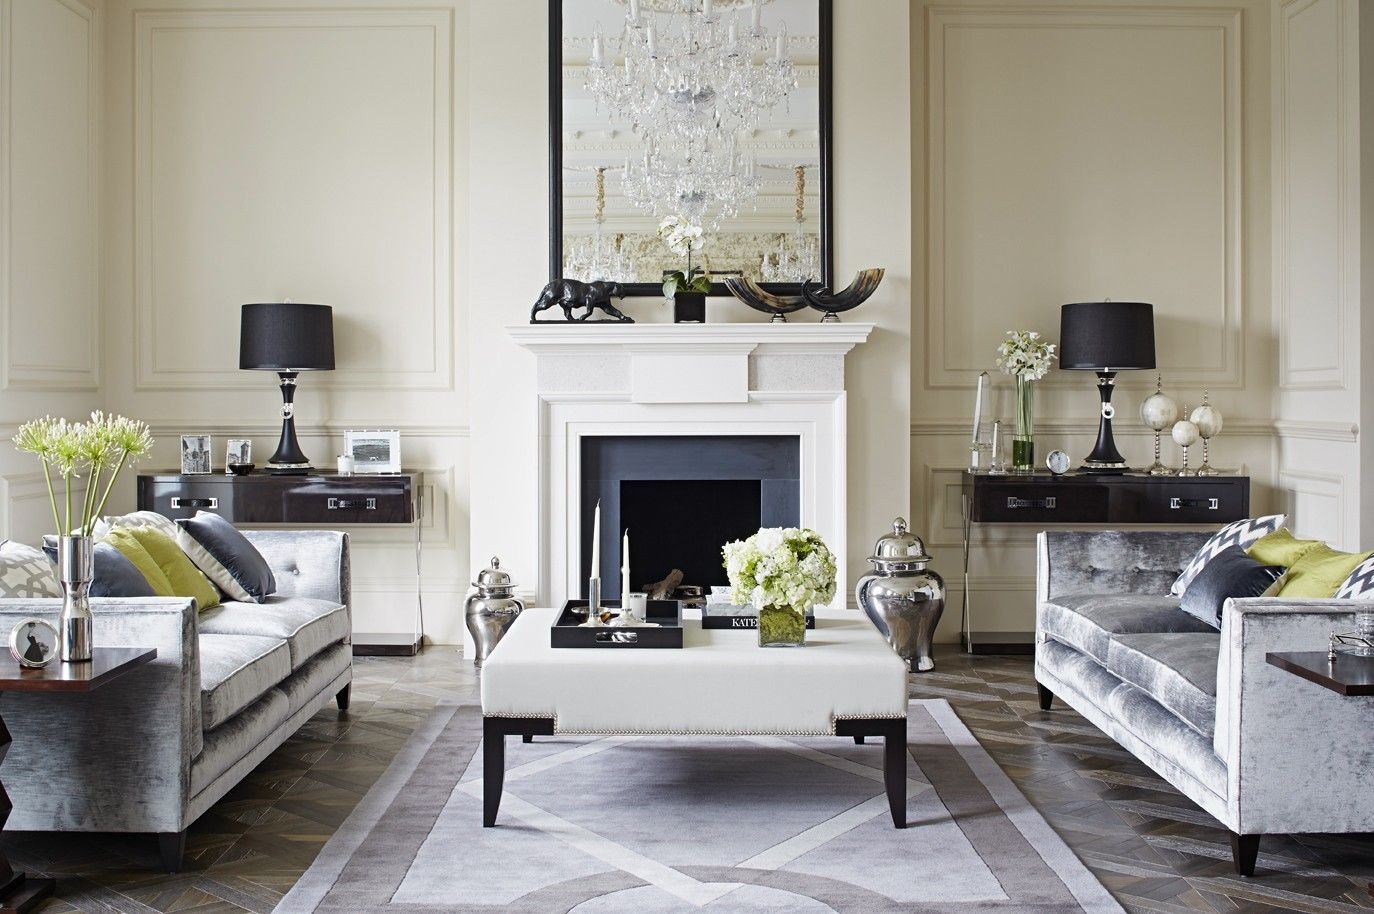 LuxDeco.com, The Place To Discover & Buy Luxury Furniture, Homeware ...